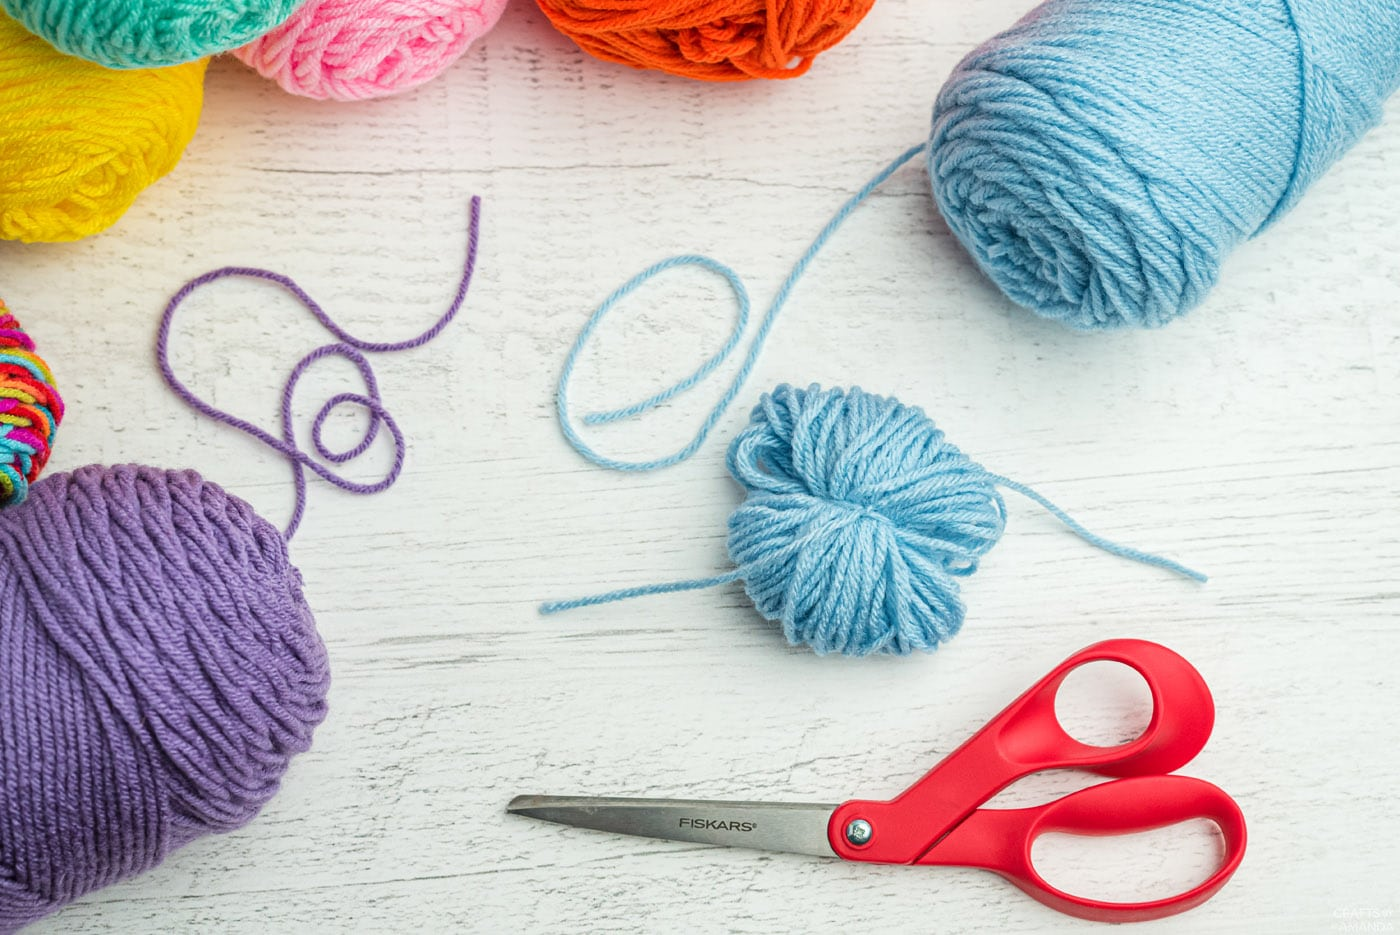 tie a knot around your yarn loops